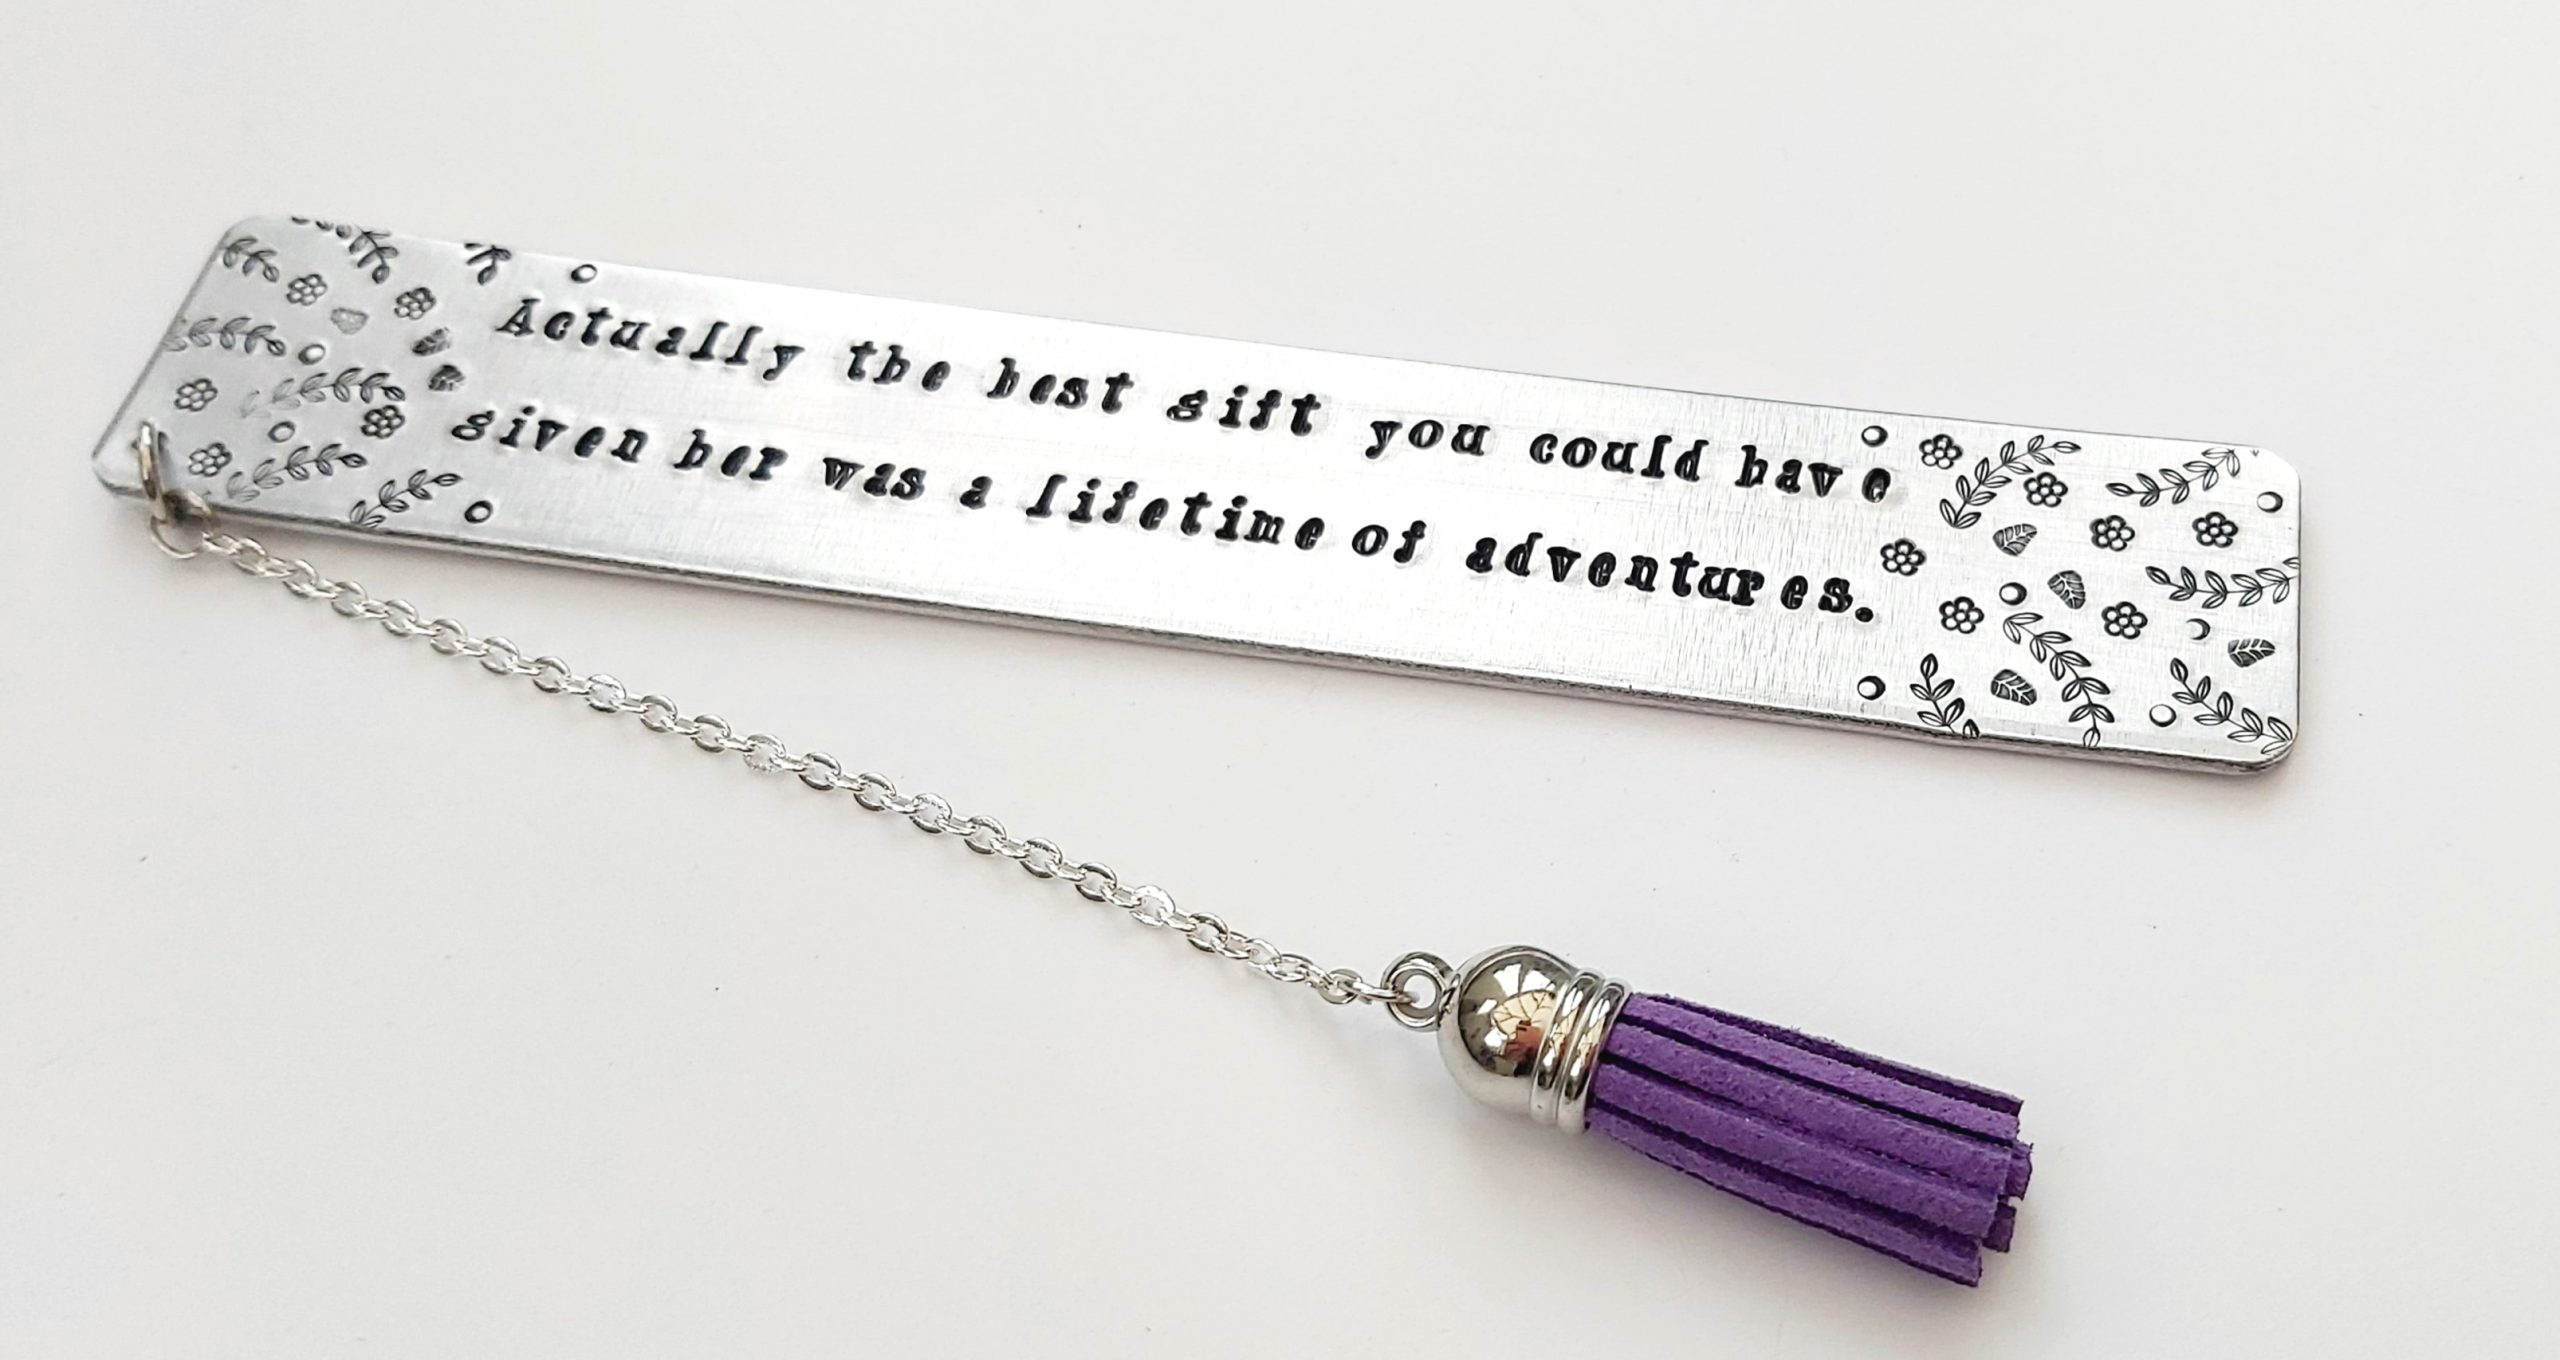 Bookmark With Alice In Wonderland Wording Handcrafted & Metal Stamped